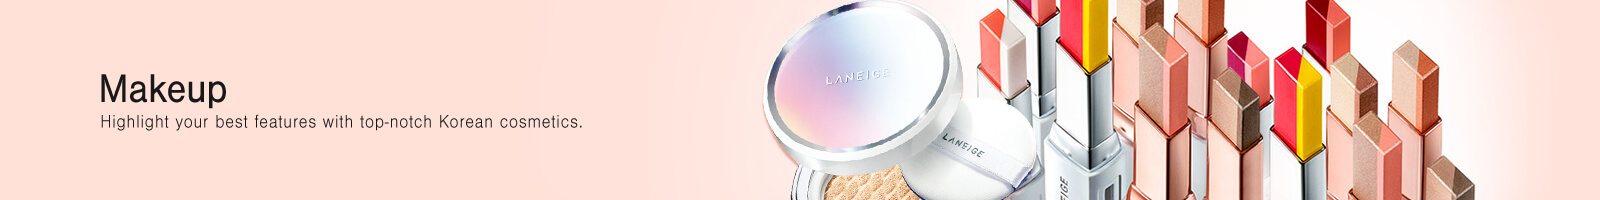 Laneige Flagship Makeup Series